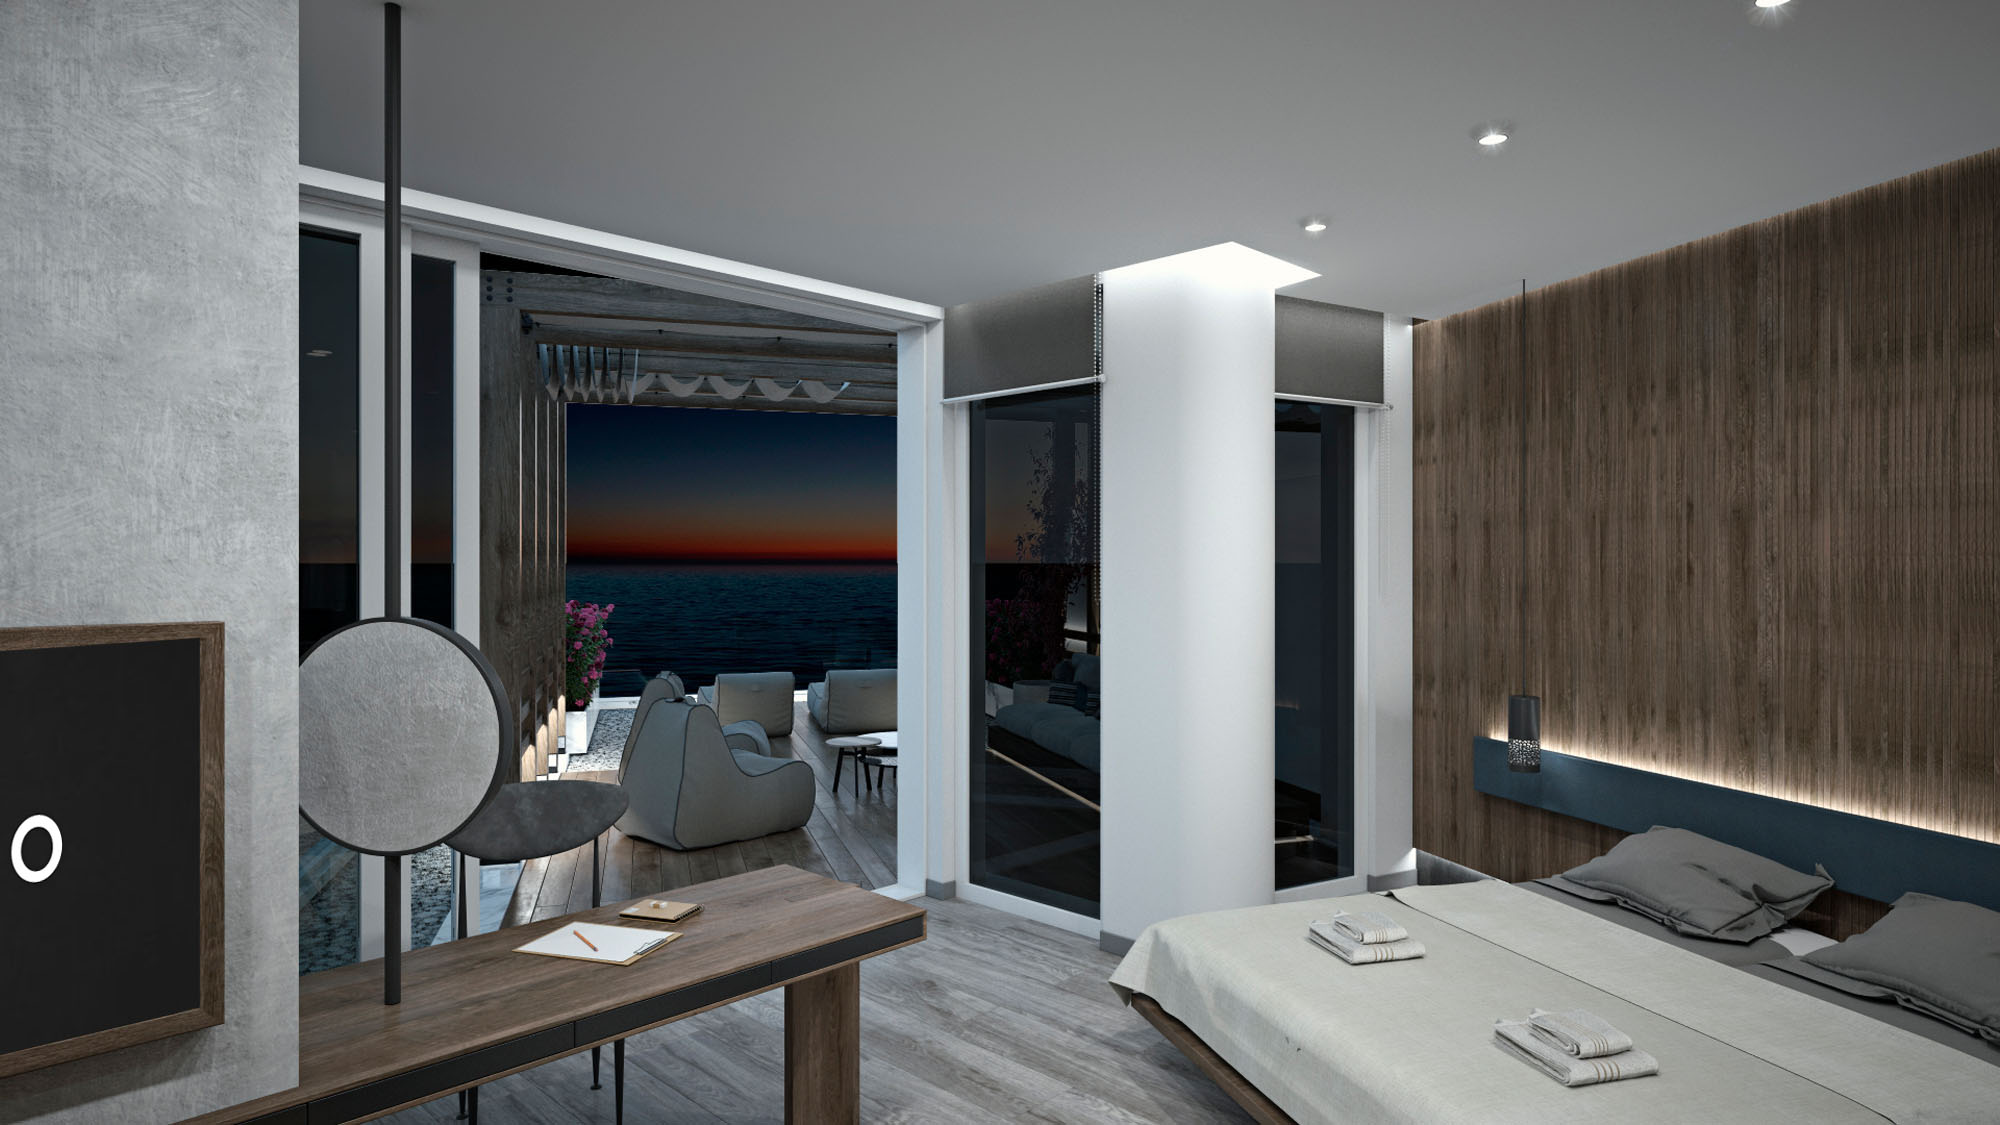 Dyo Suites Luxury Boutique Hotel Rethymno Crete - Iridium Suite